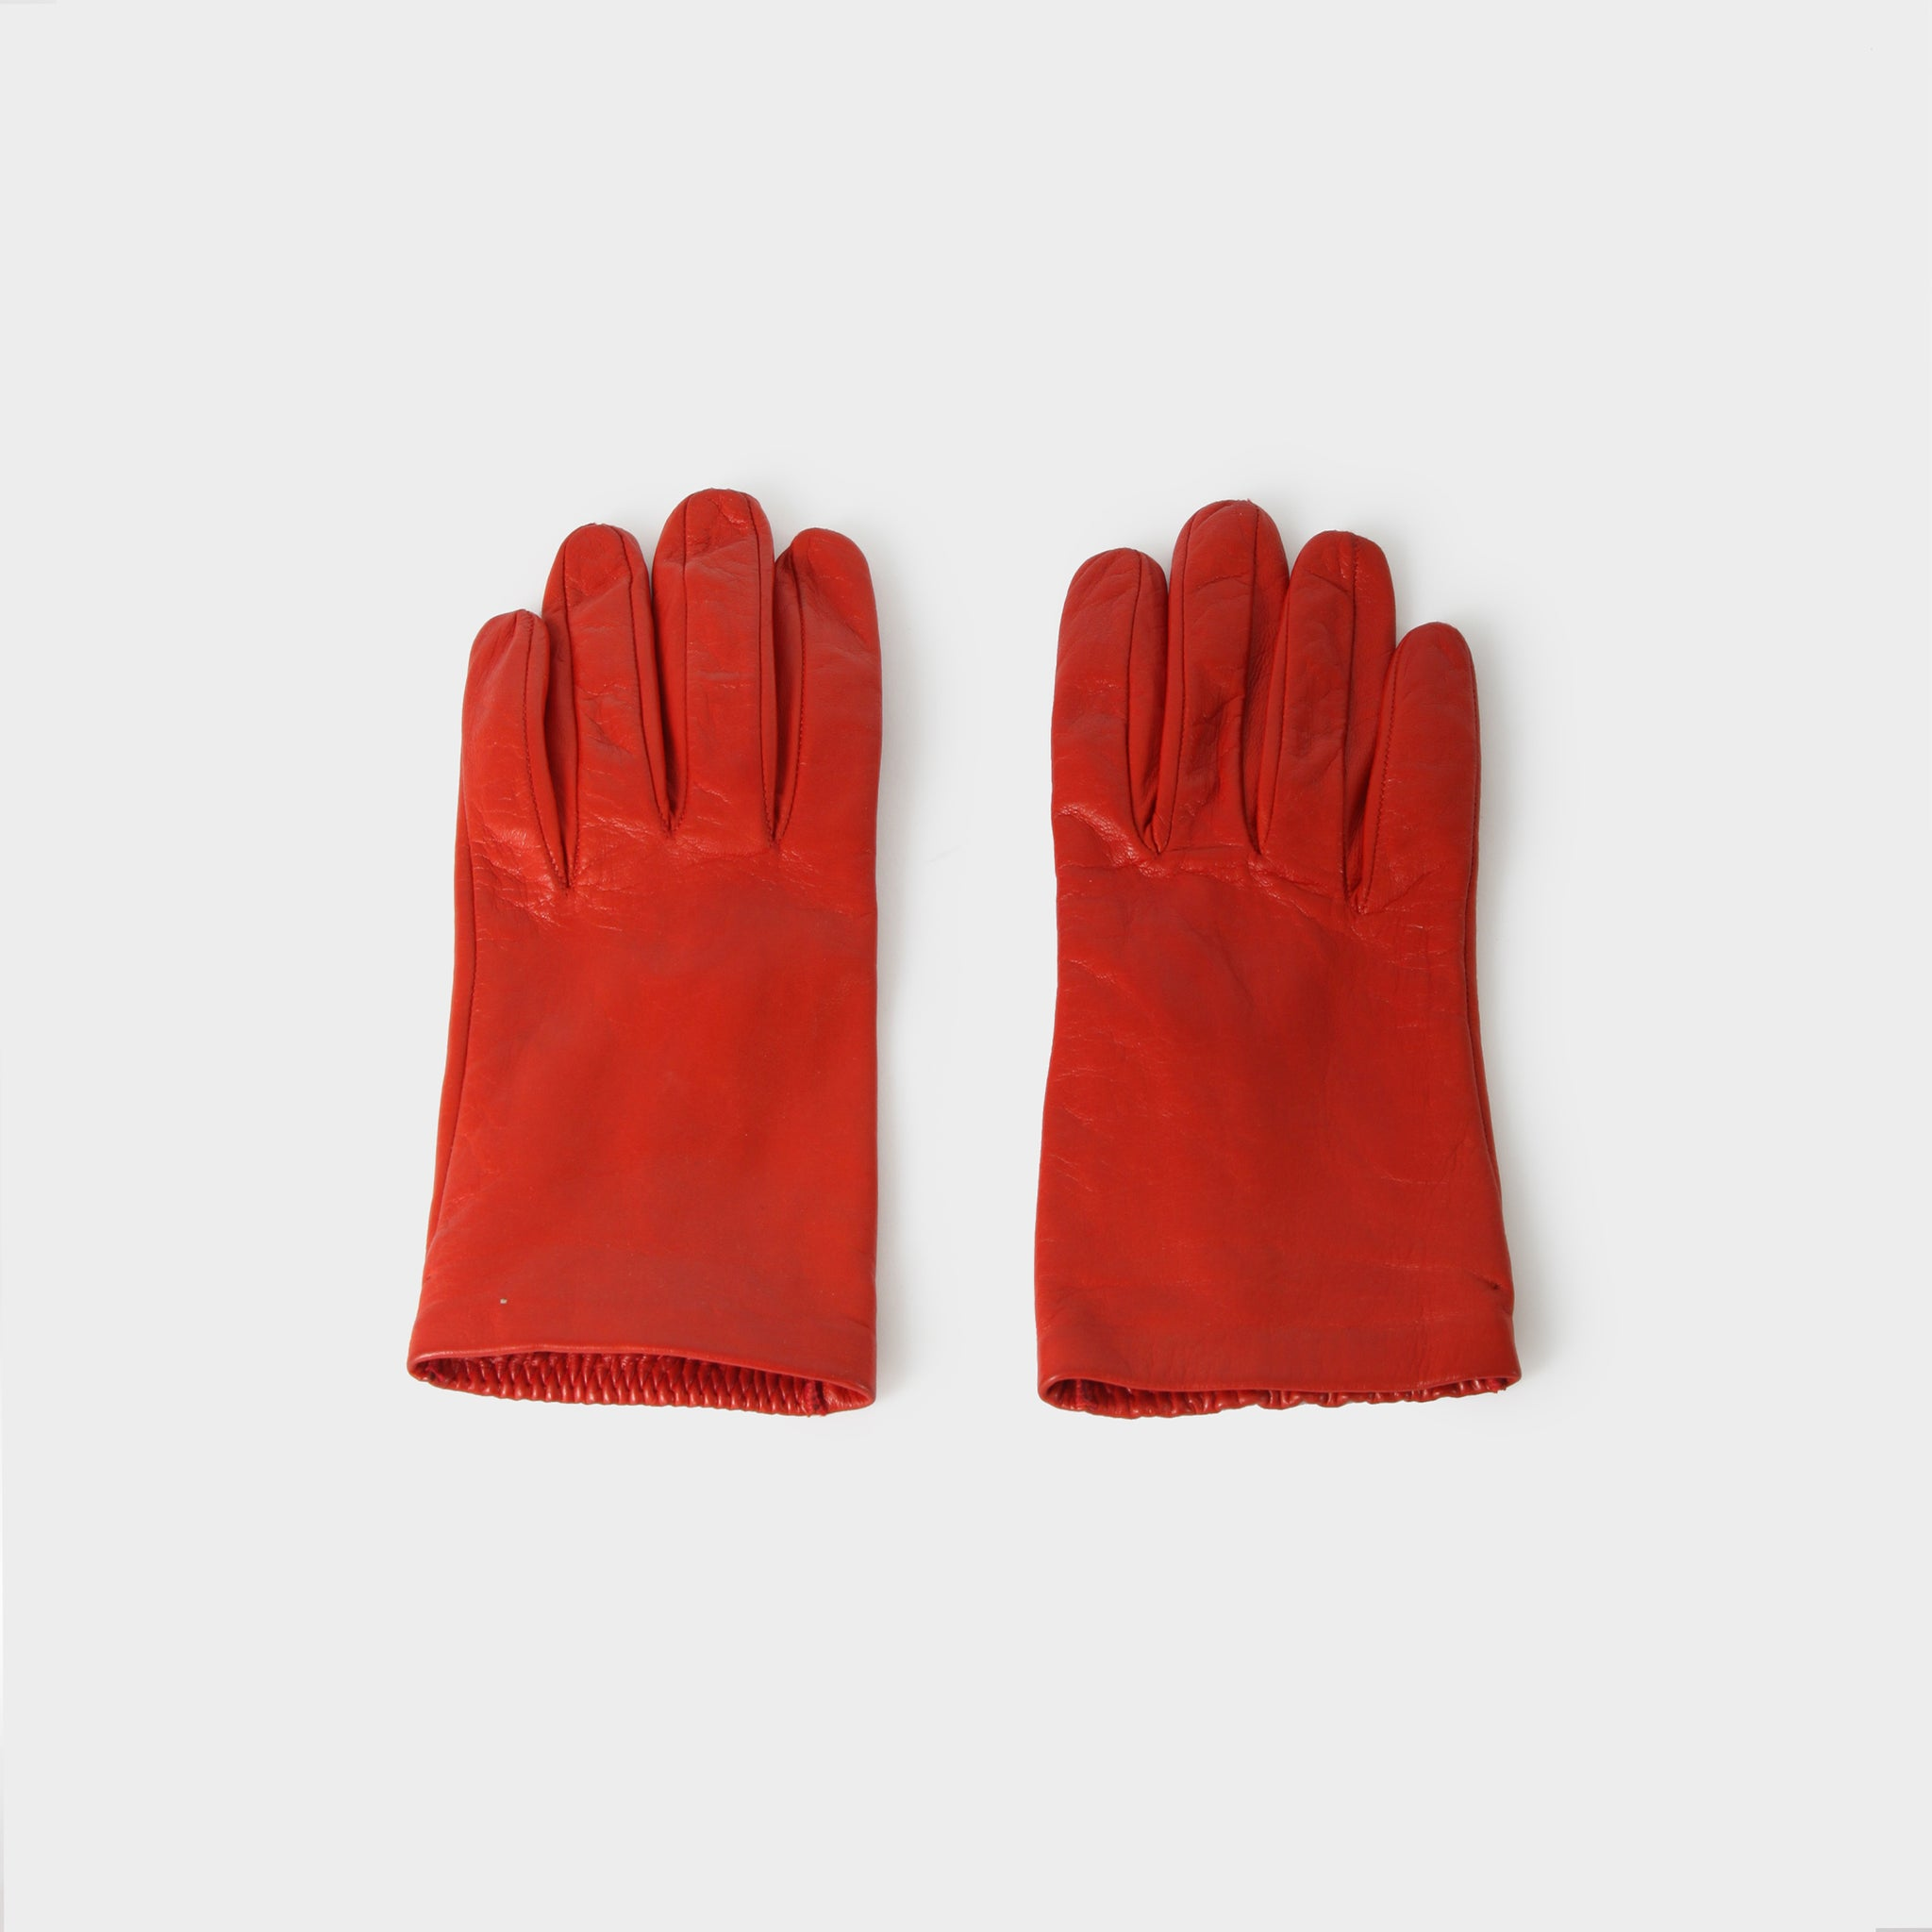 Dries van Noten Red Leather Gloves